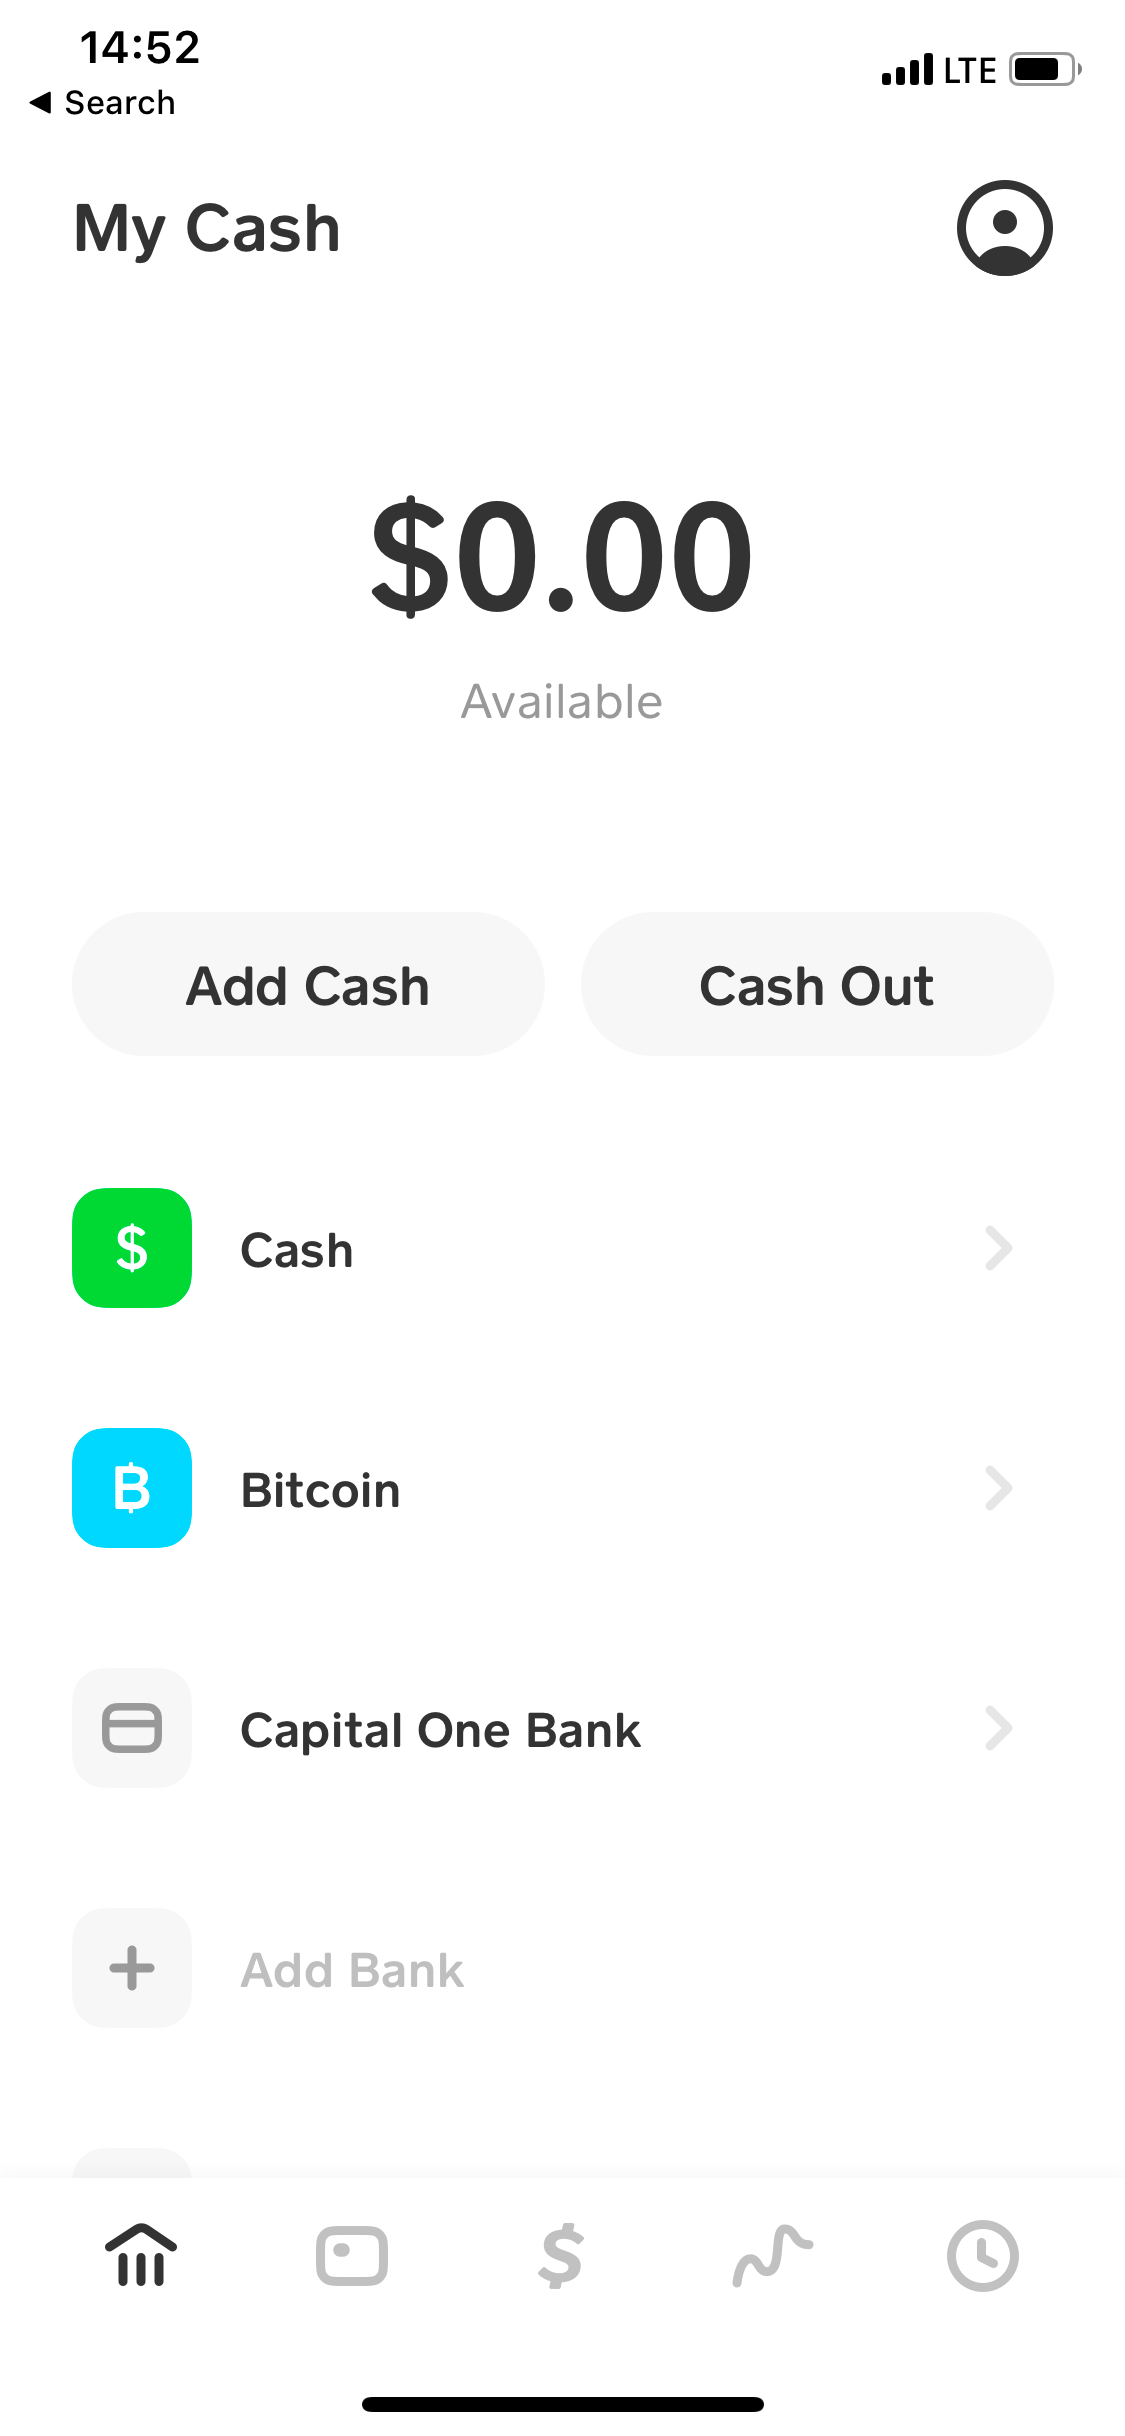 How To Buy And Send Bitcoin With Cash App